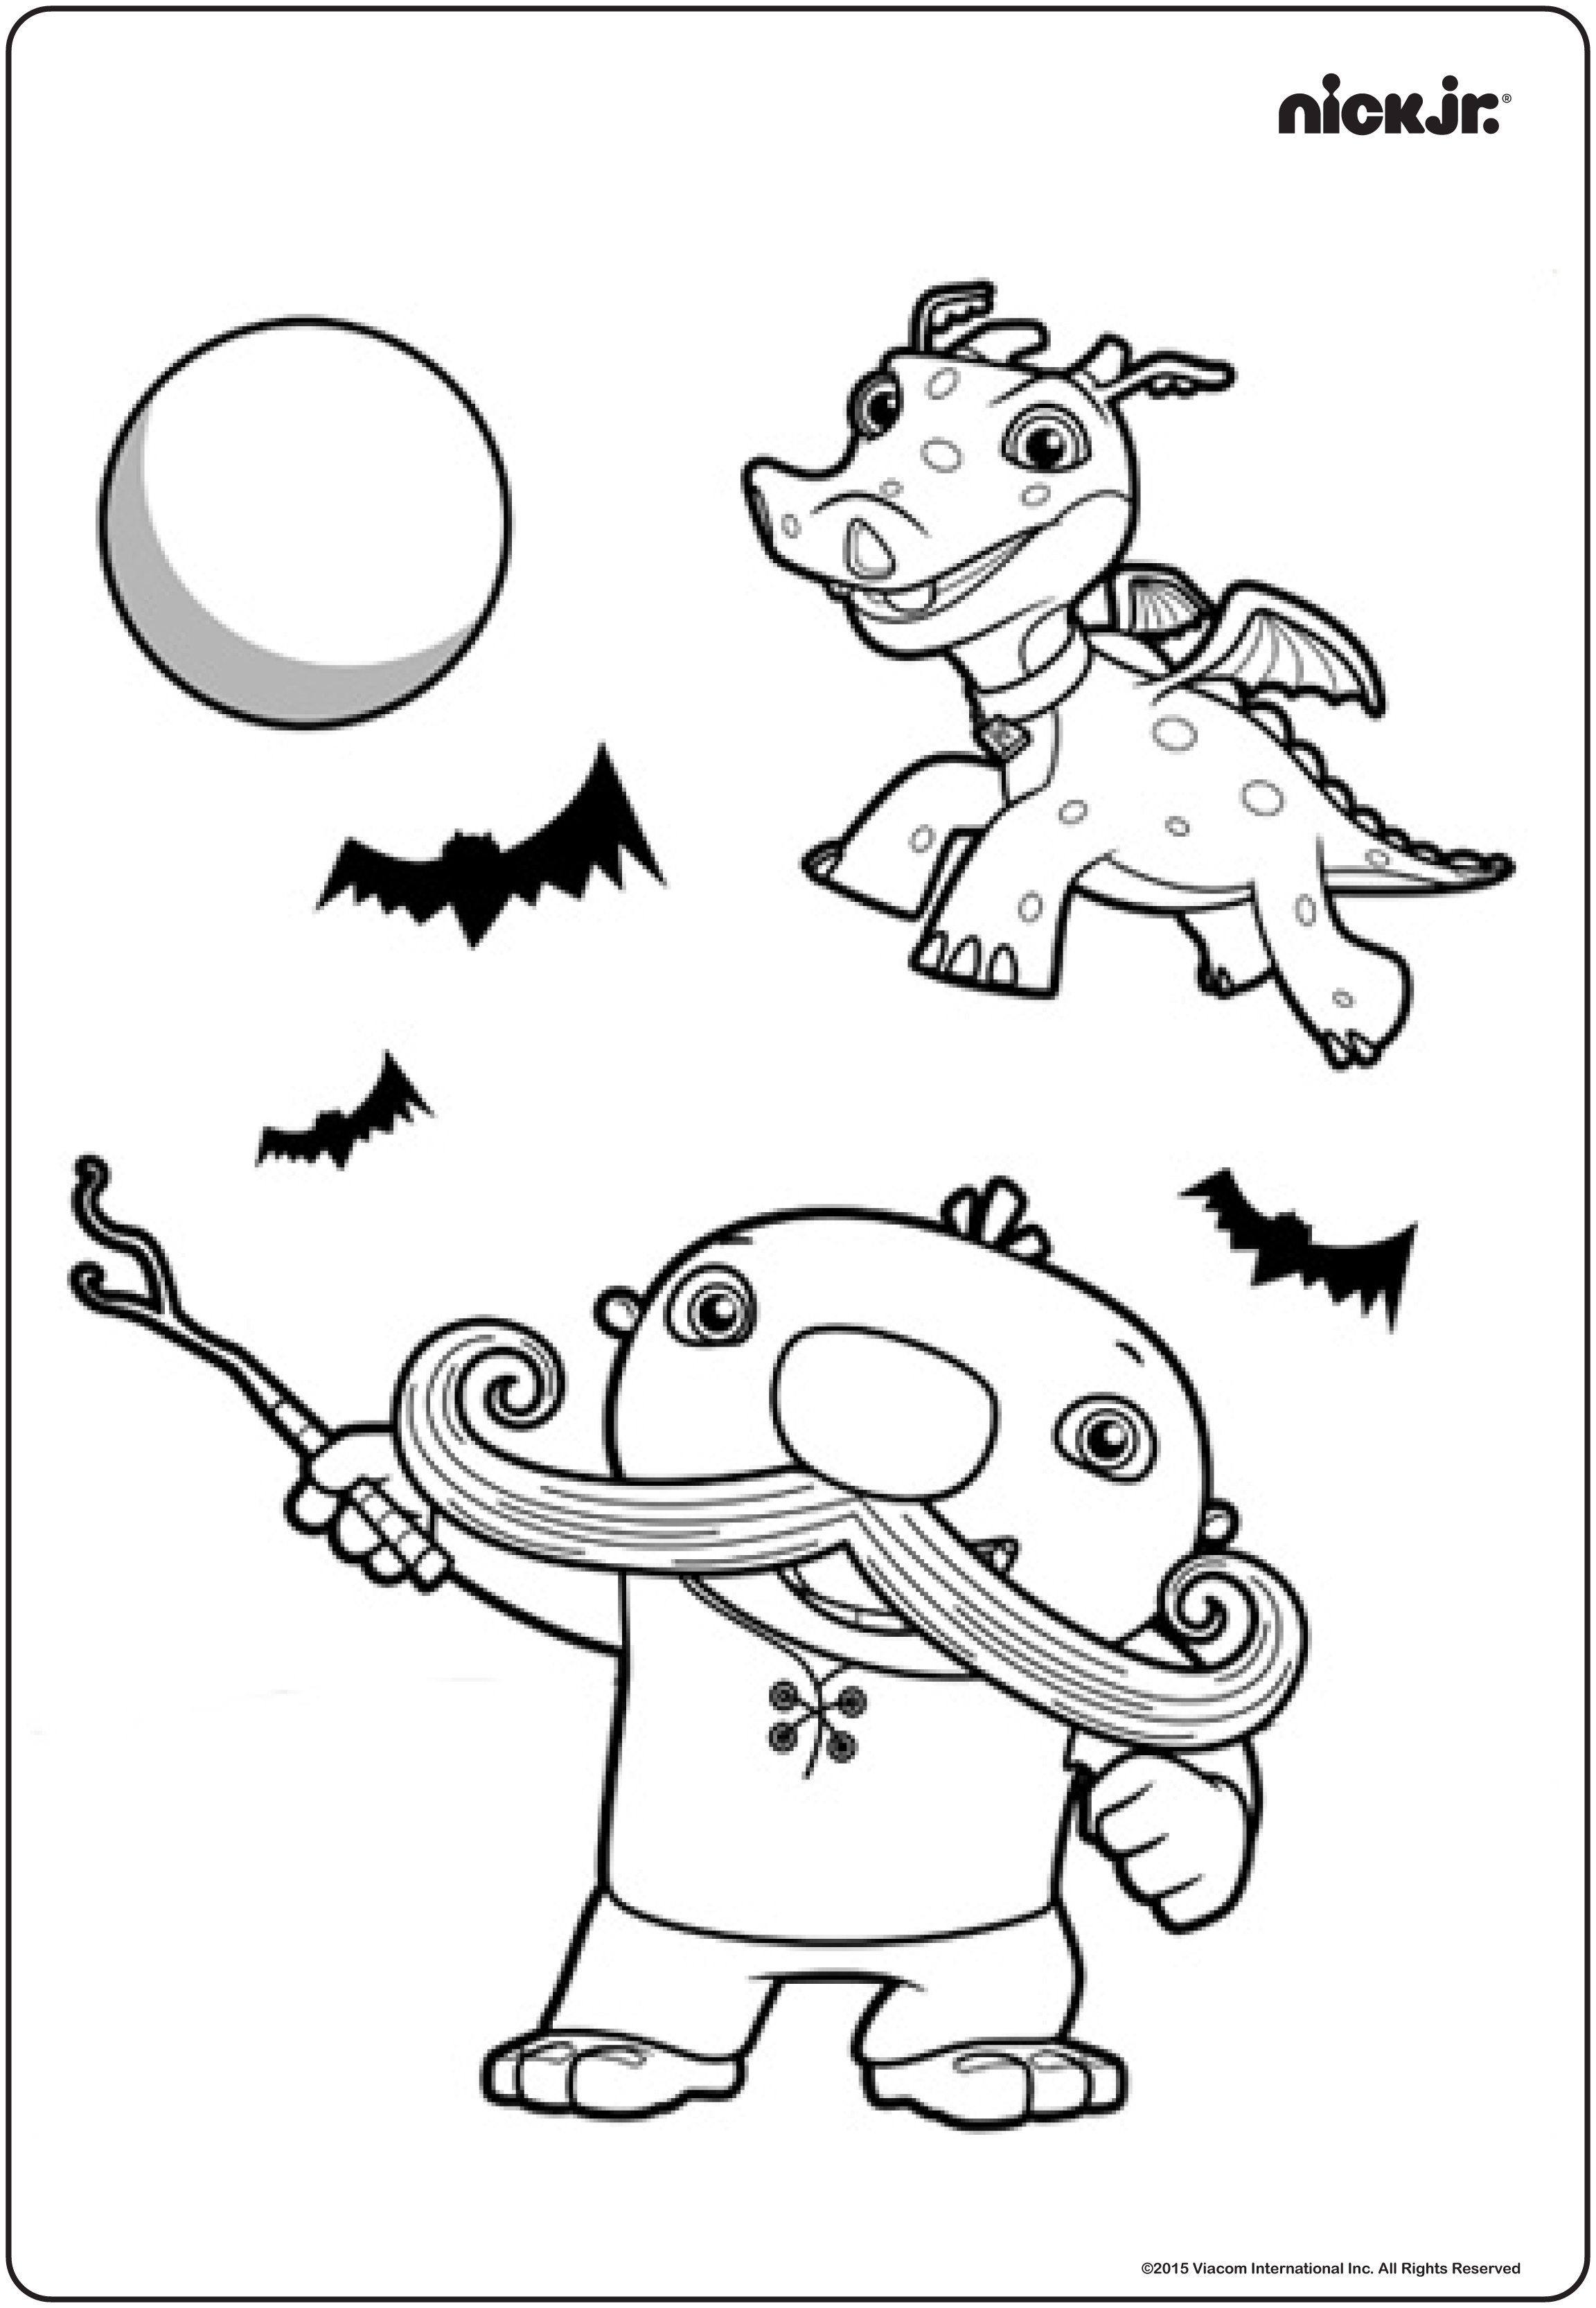 Paw patrol coloring pages christmas - Paw Patrol Colouring Pages Nick Jr Coloring Pages